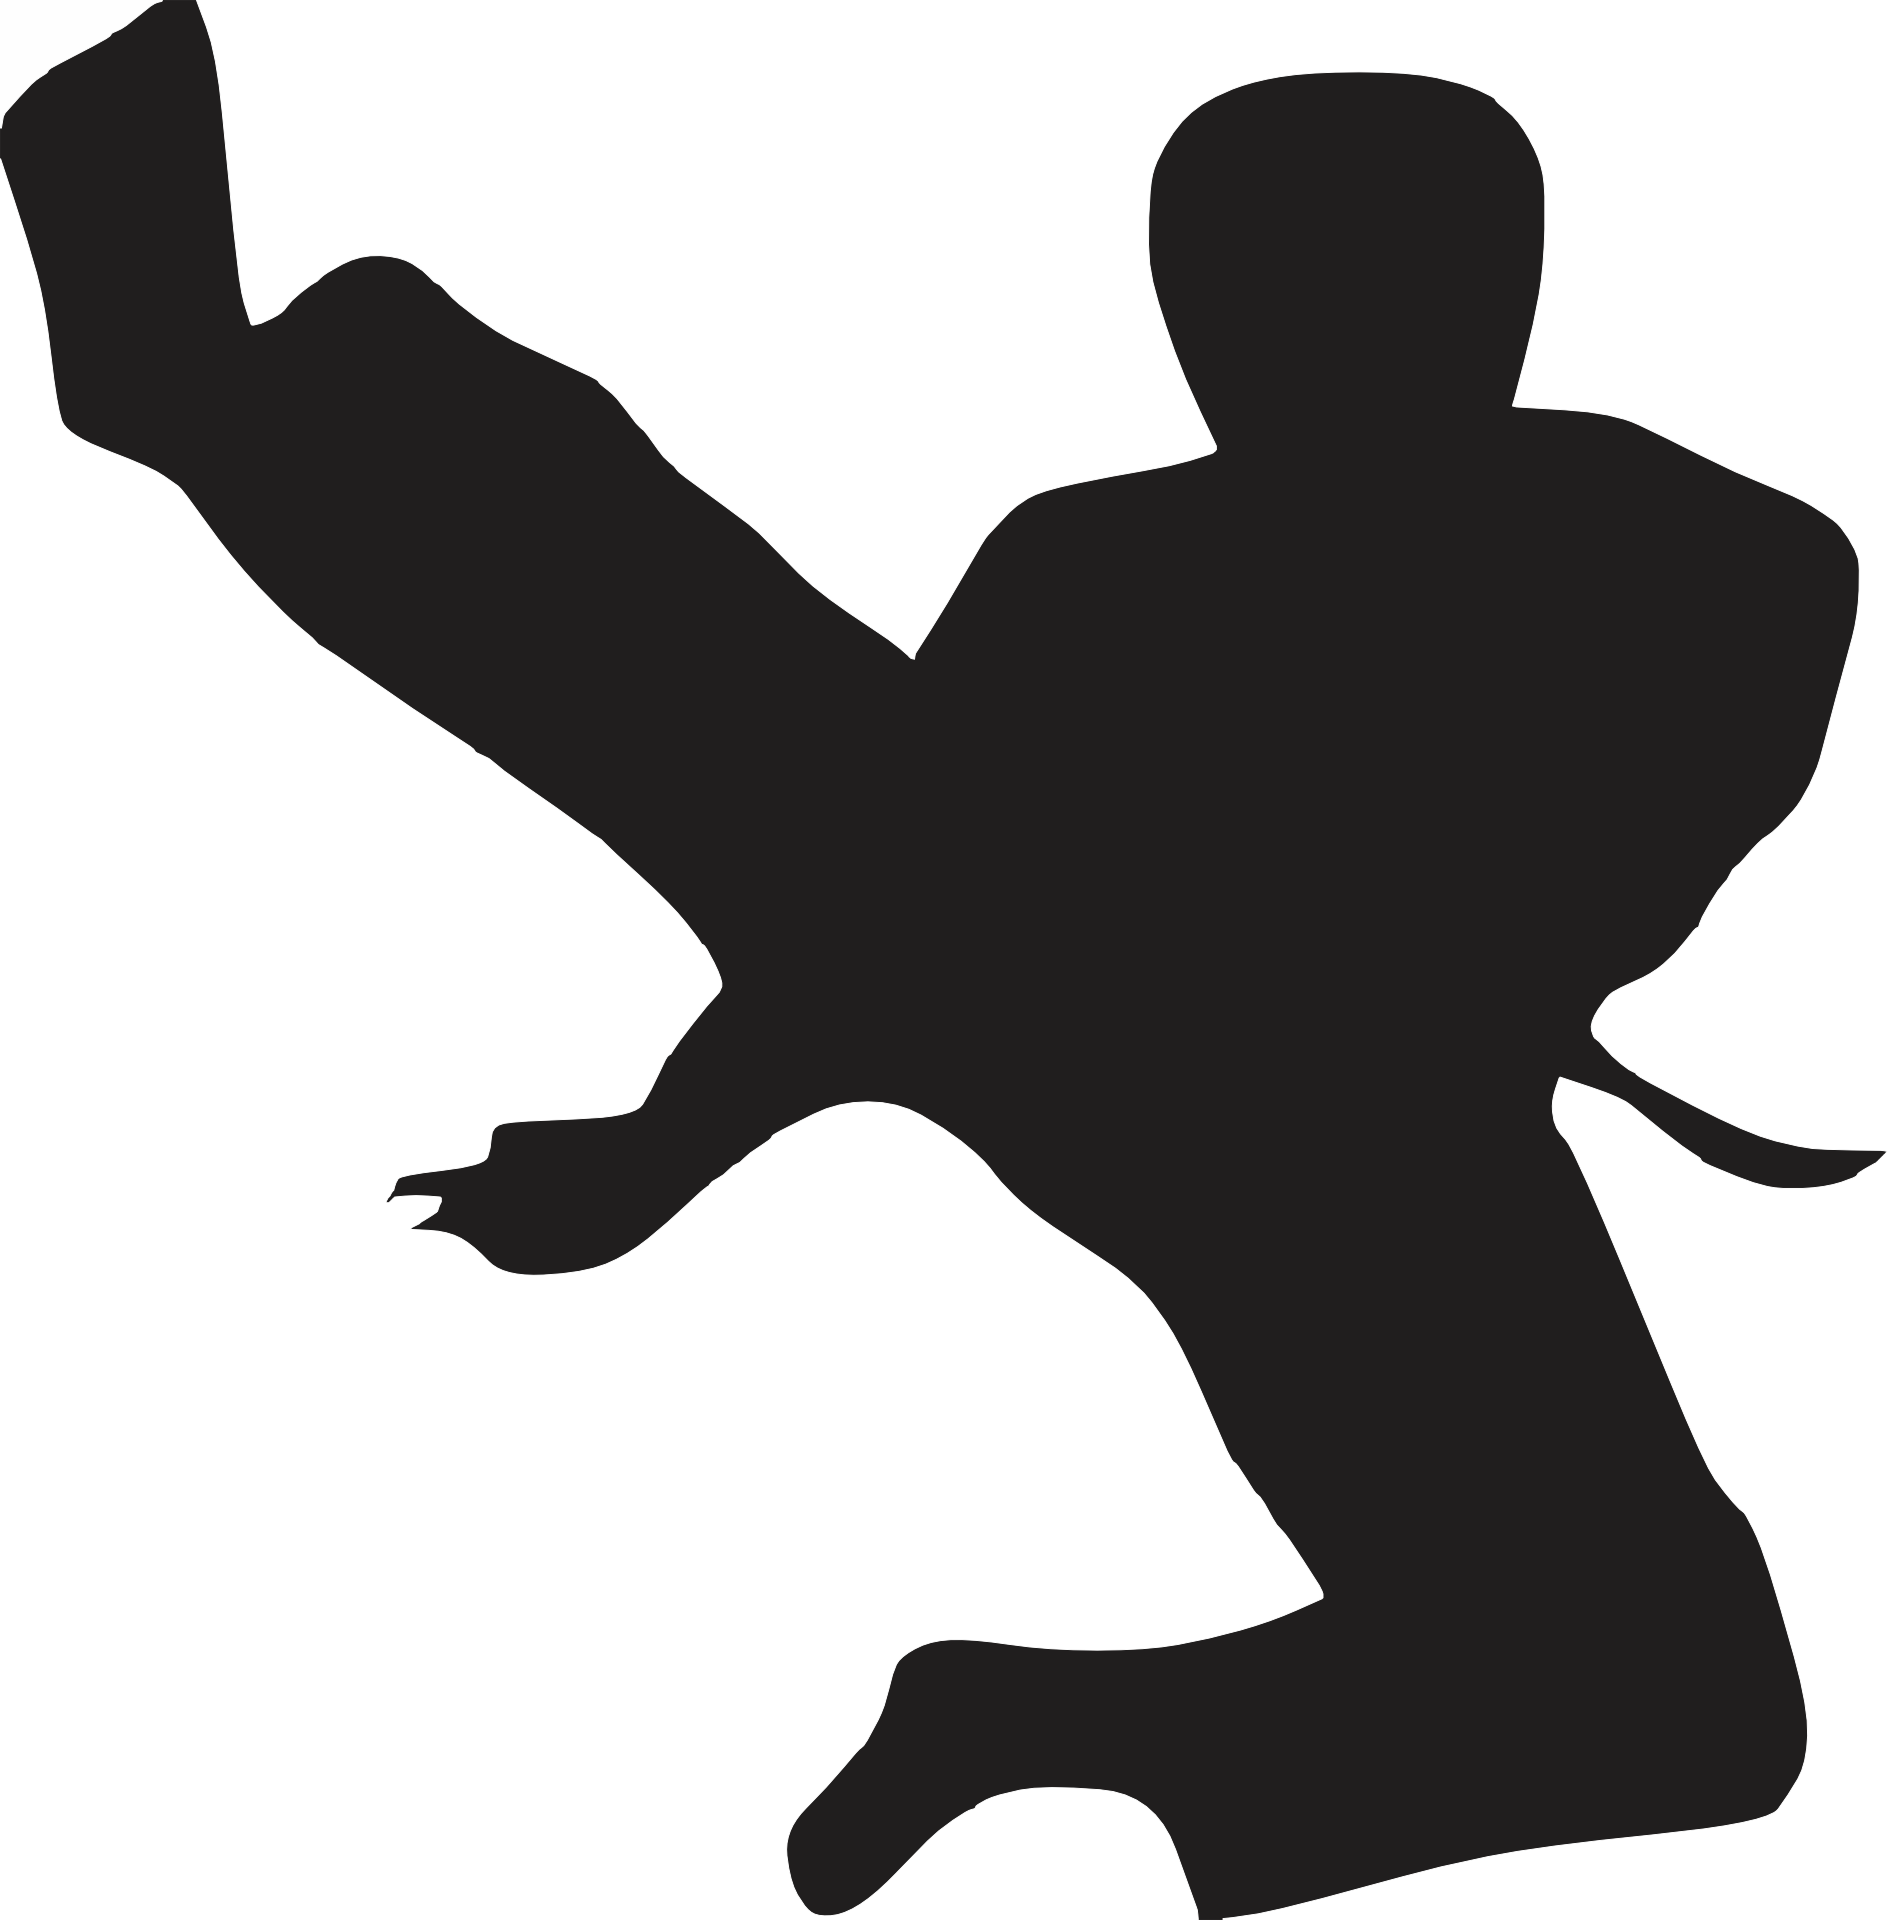 karate martial arts anxiety - 5 Benefits of Martial Arts as Daily Exercise to Avoid Anxiety